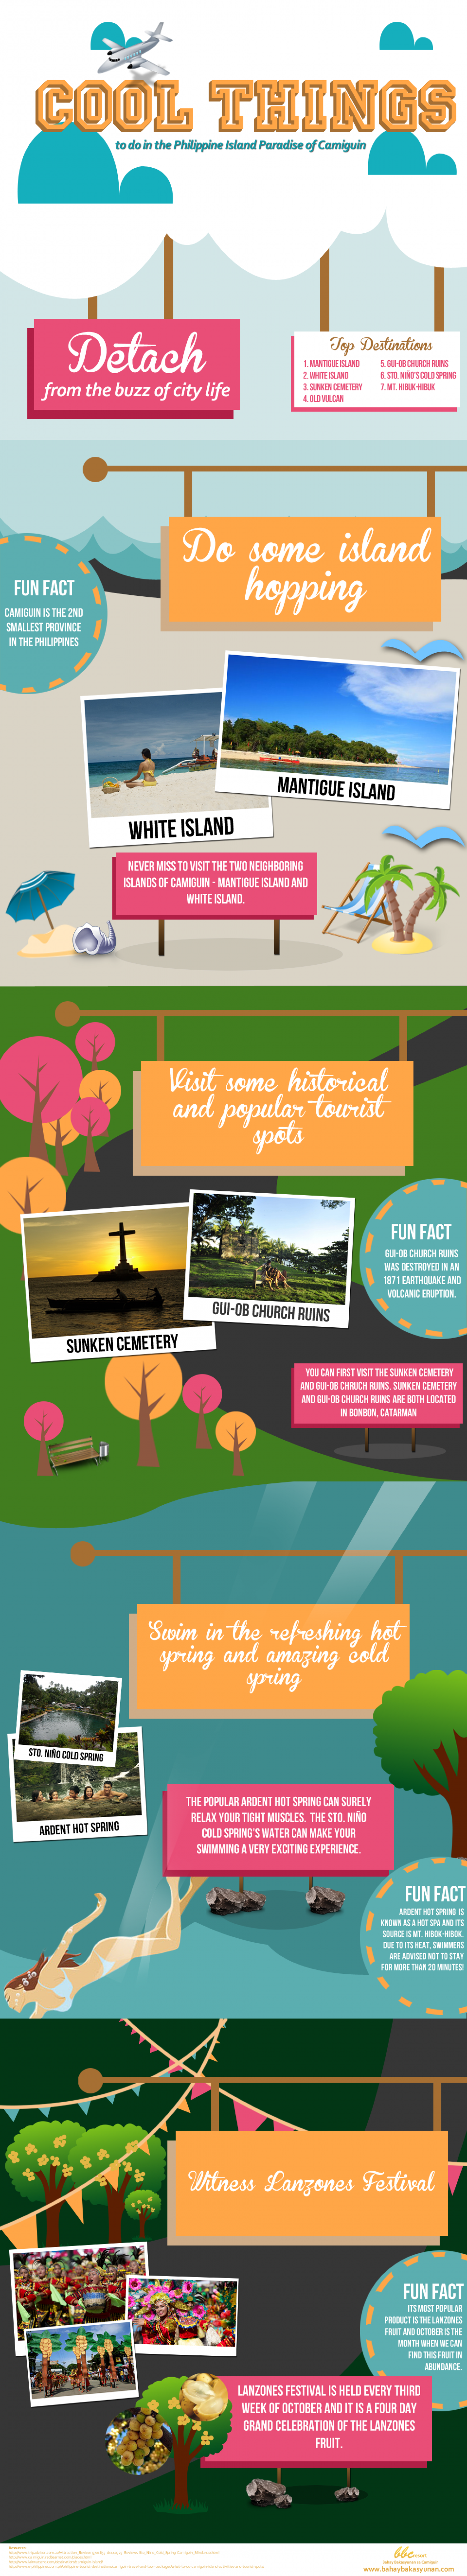 Cool Thing to do in the Philippine Island Paradise of Camiguin Infographic